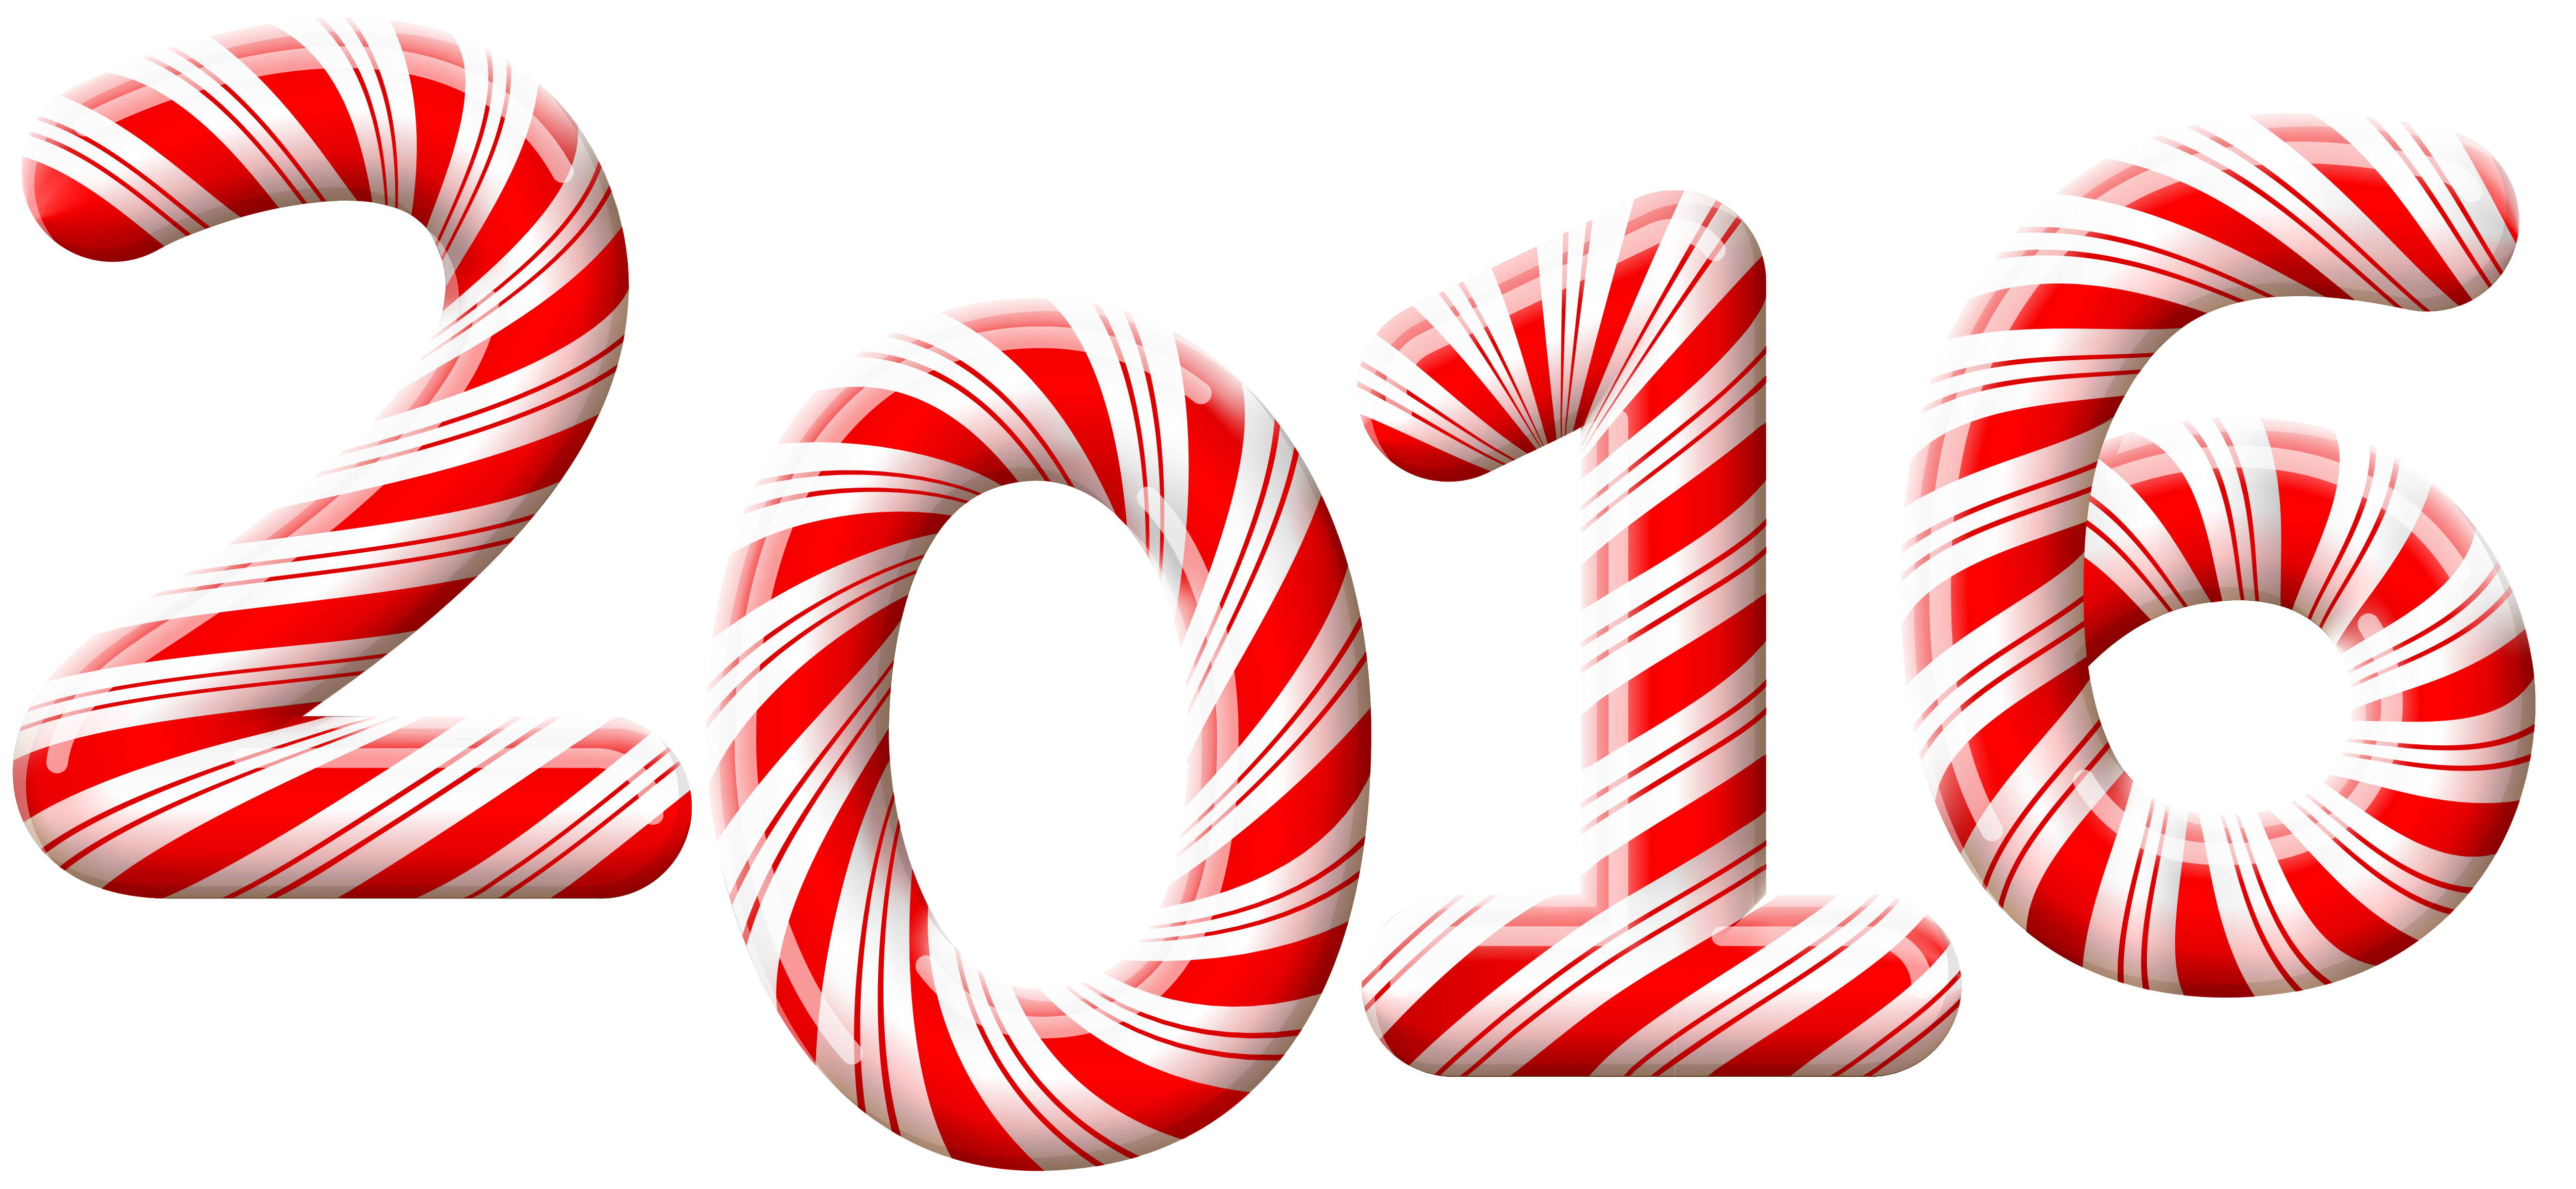 2016 christmas clipart clipart black and white download 2016 Candy Cane PNG Clip-Art Image | Gallery Yopriceville - High ... clipart black and white download